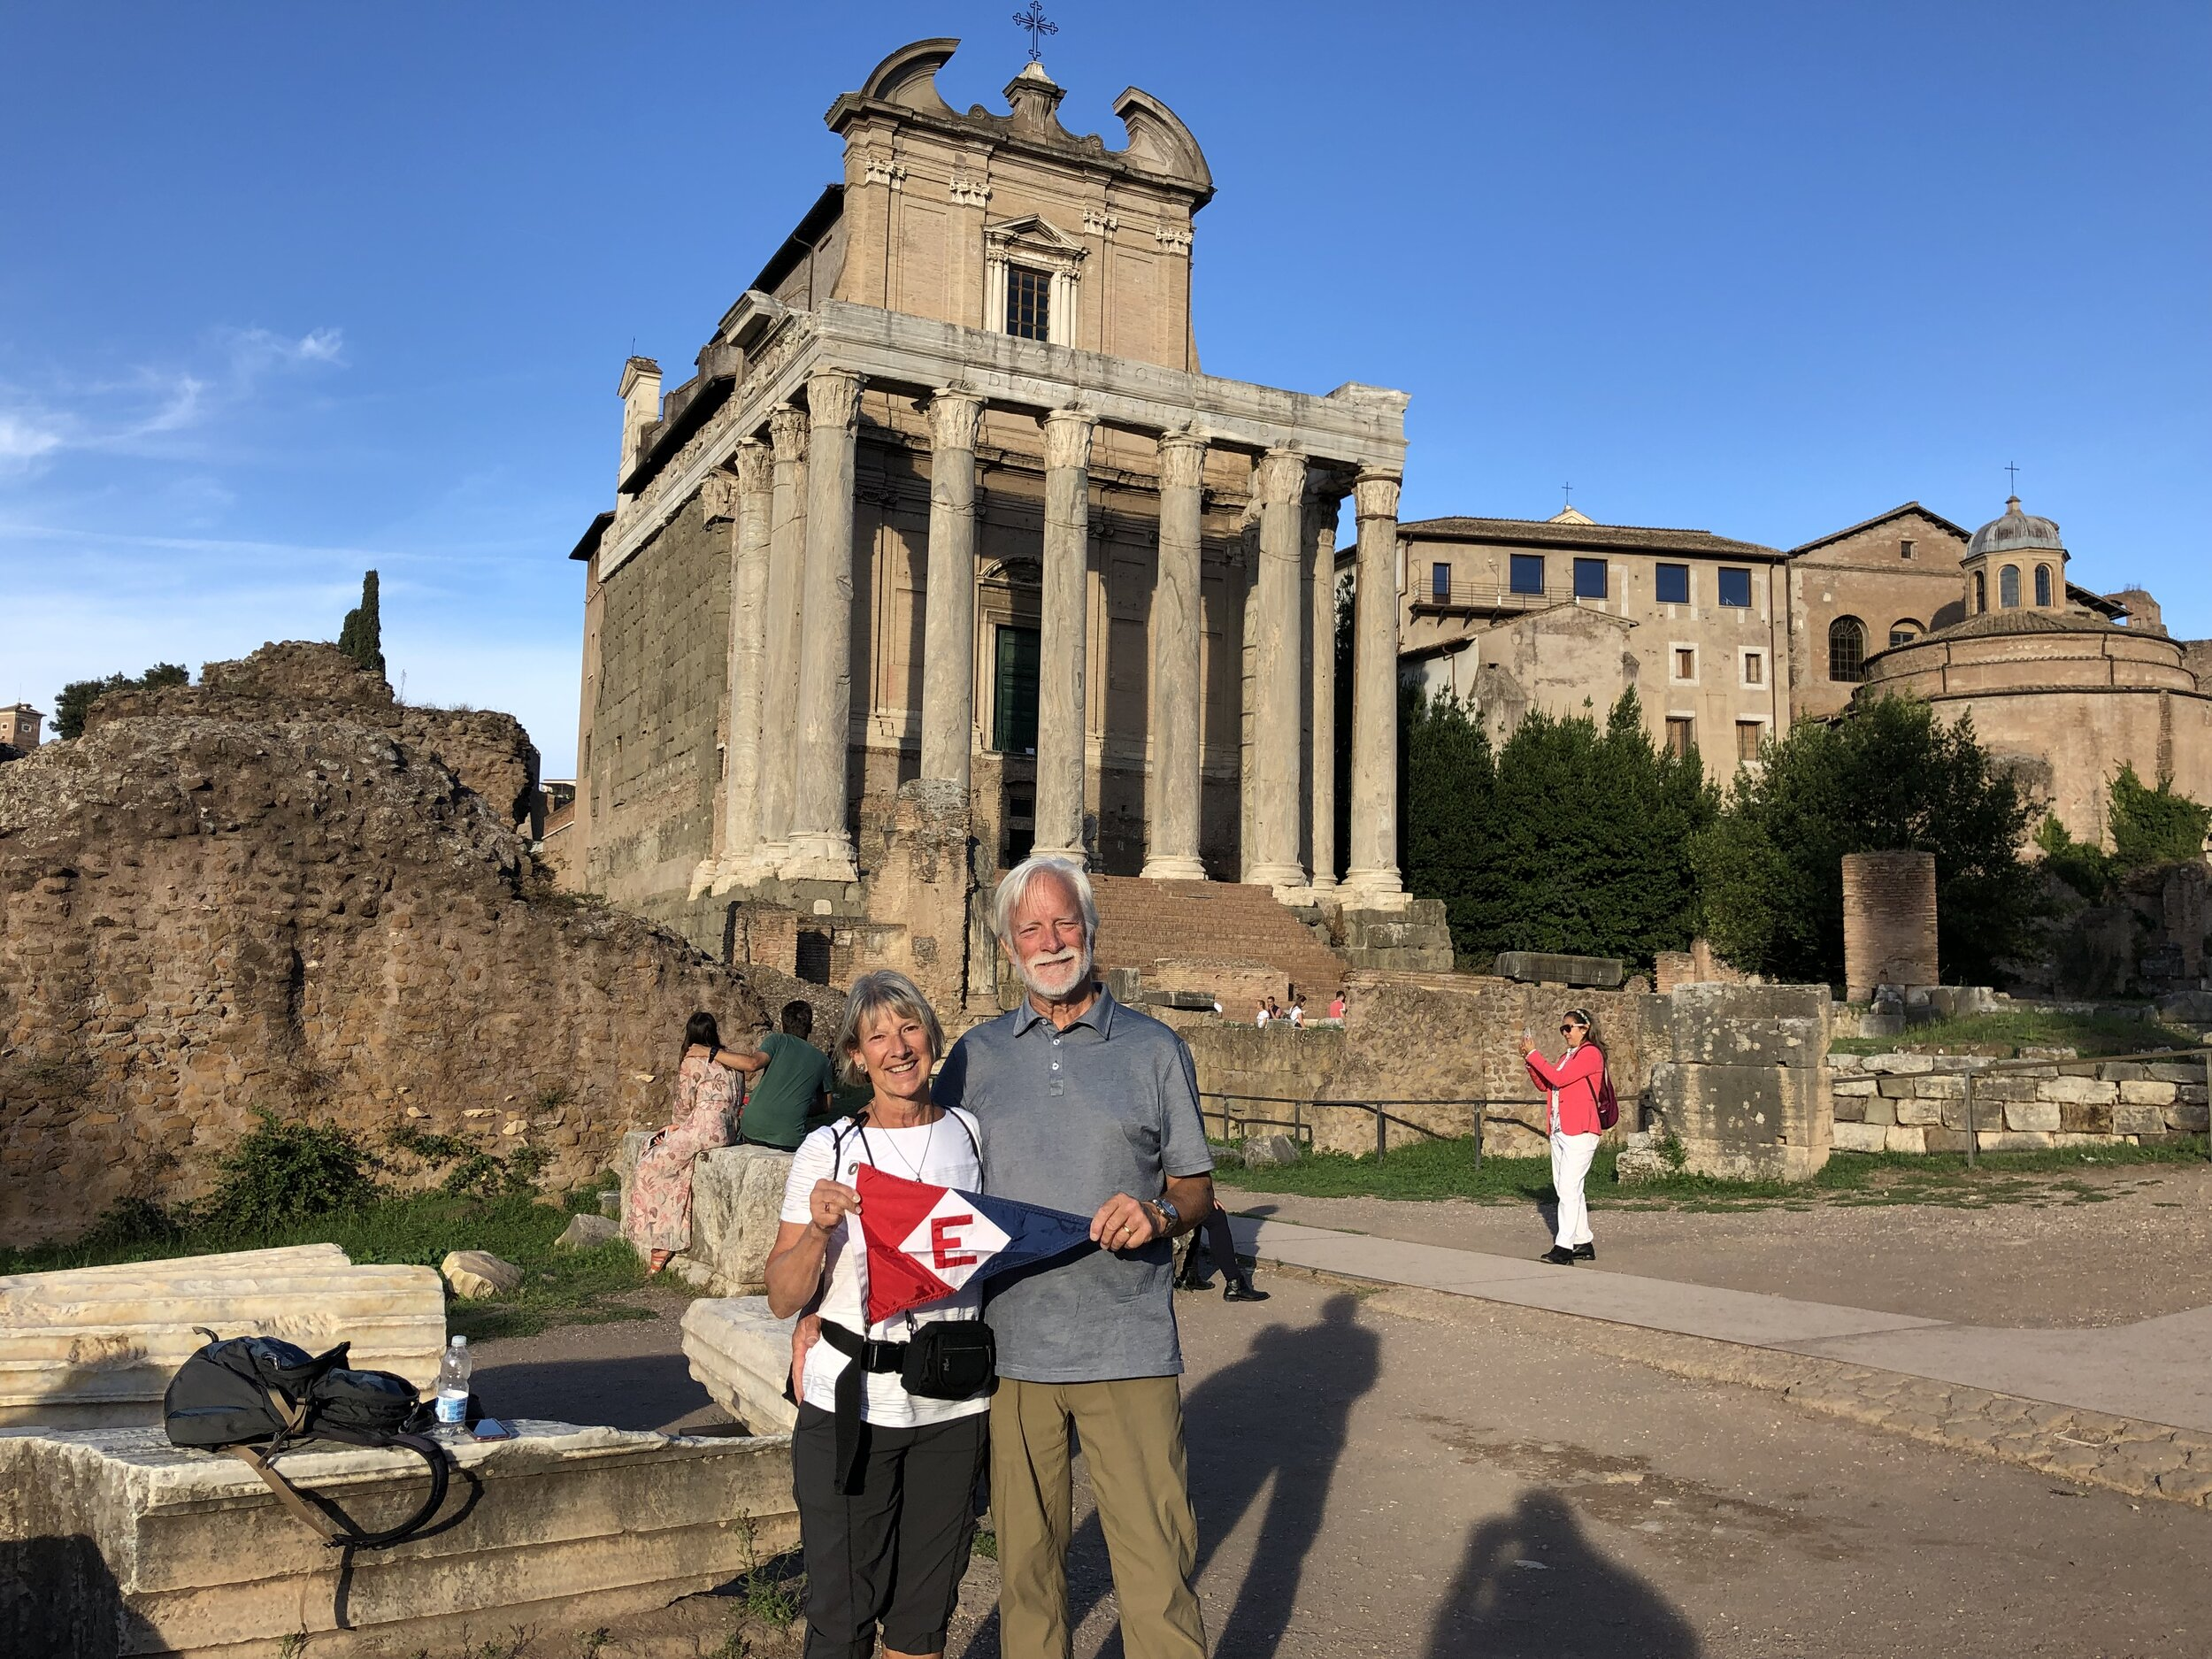 Chris & Ken hoist the colors in front of the Forum in Rome, Italy